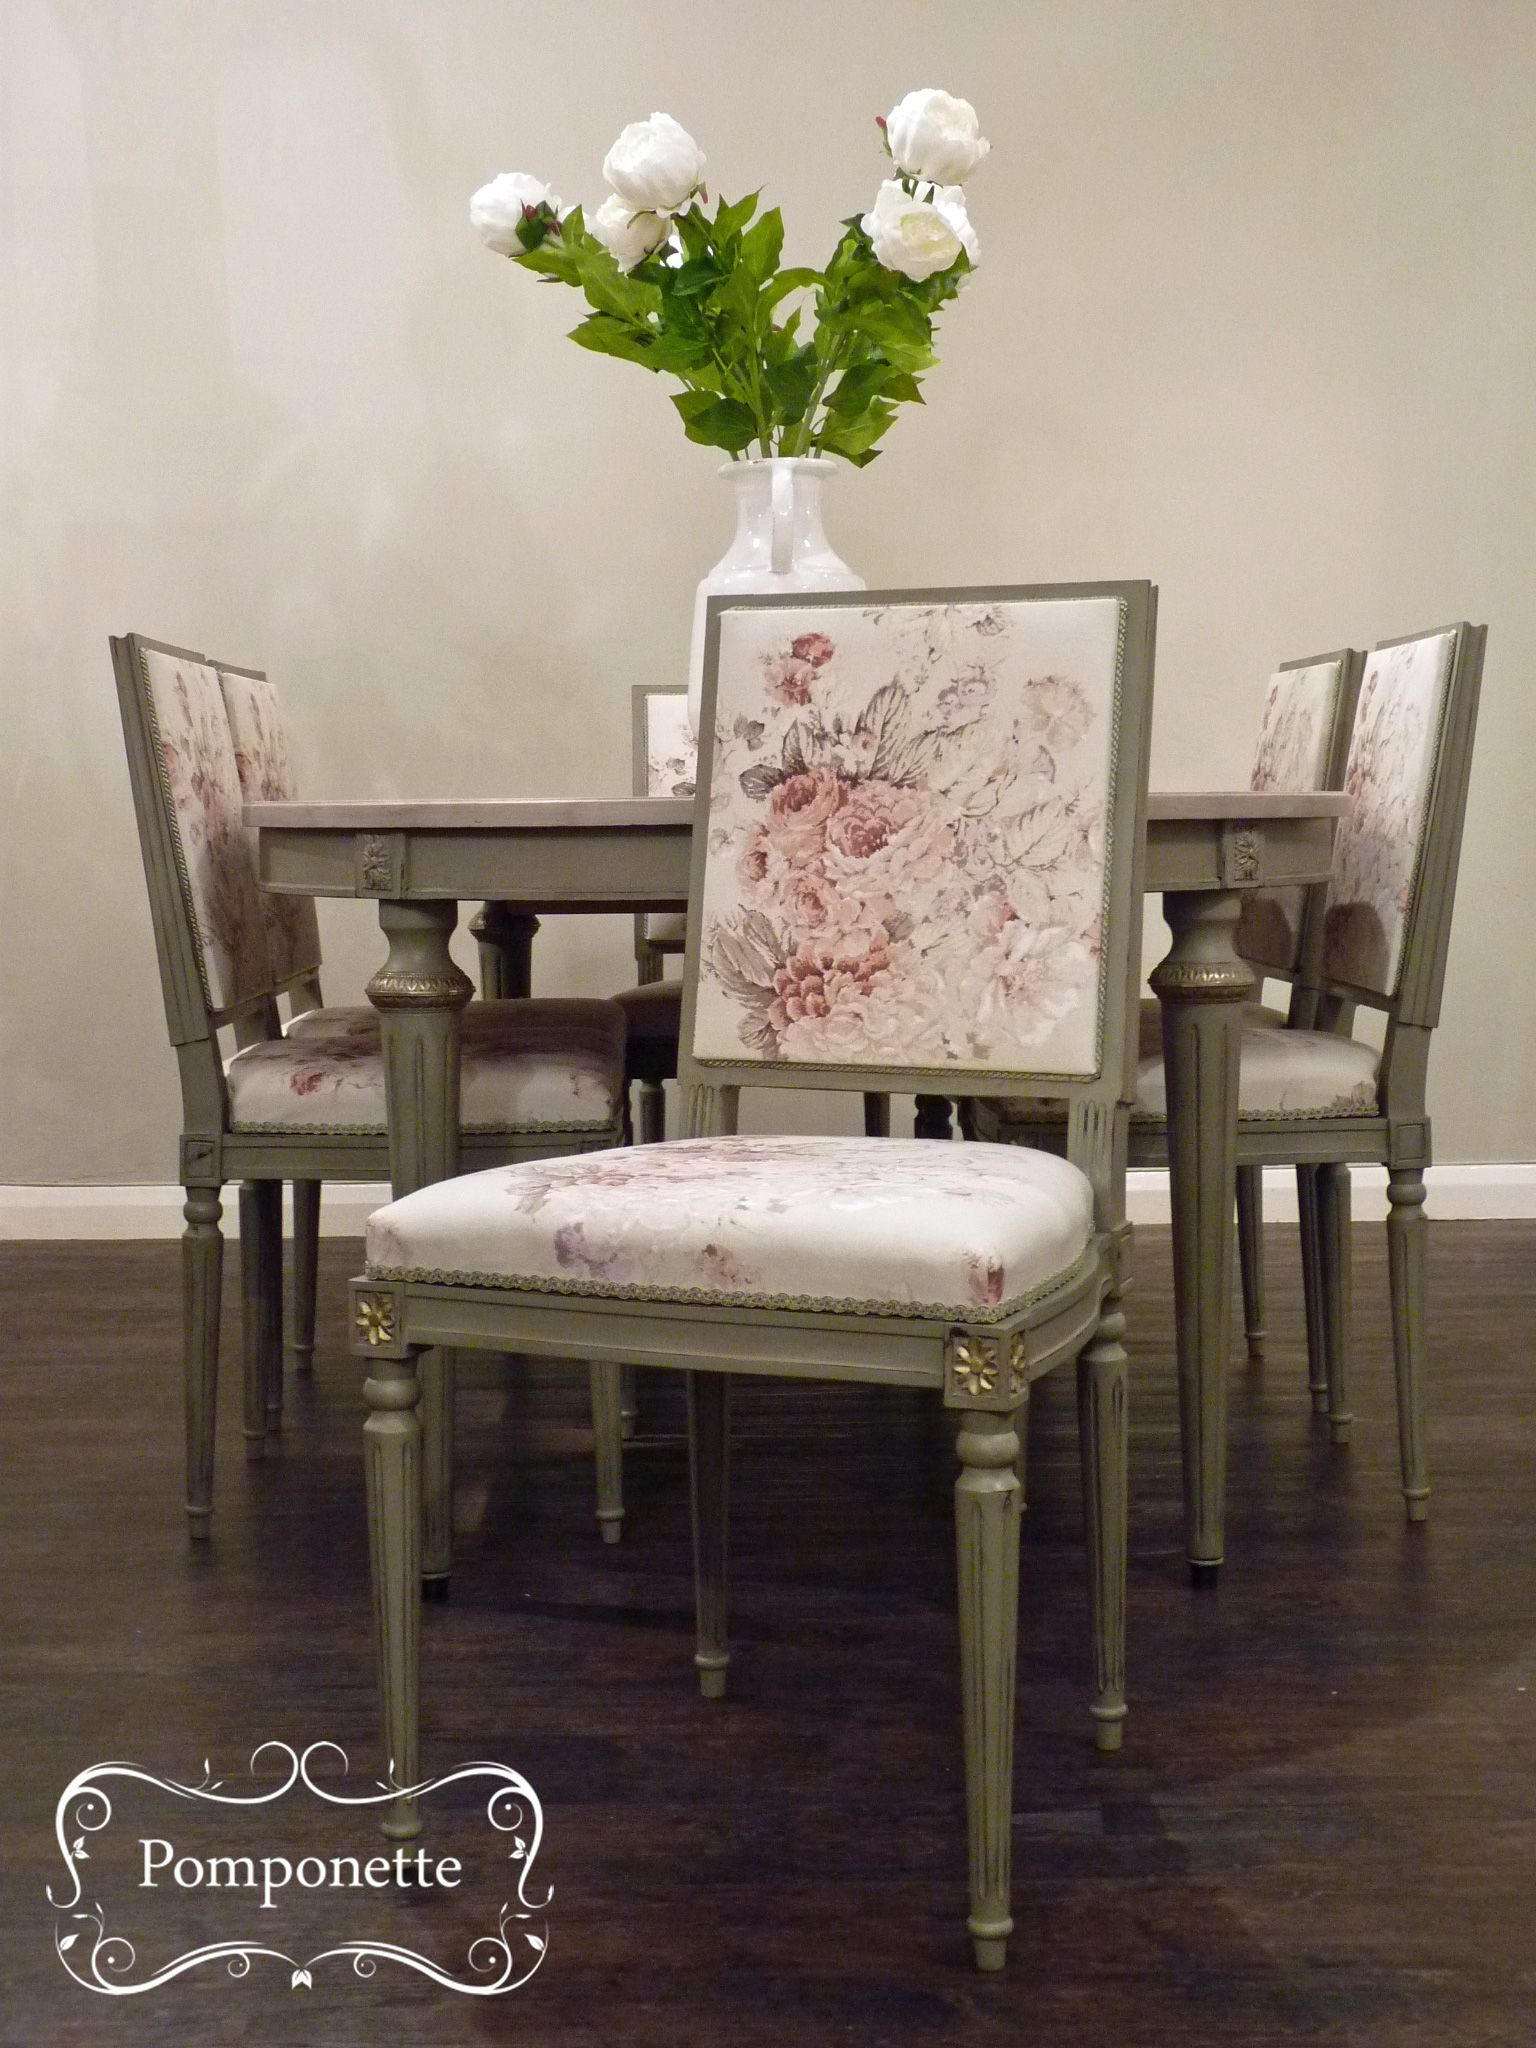 French Extendable Dining Table With Six Upholstered Chairs The Elegant Combination Of Anniesloanhome Chateau